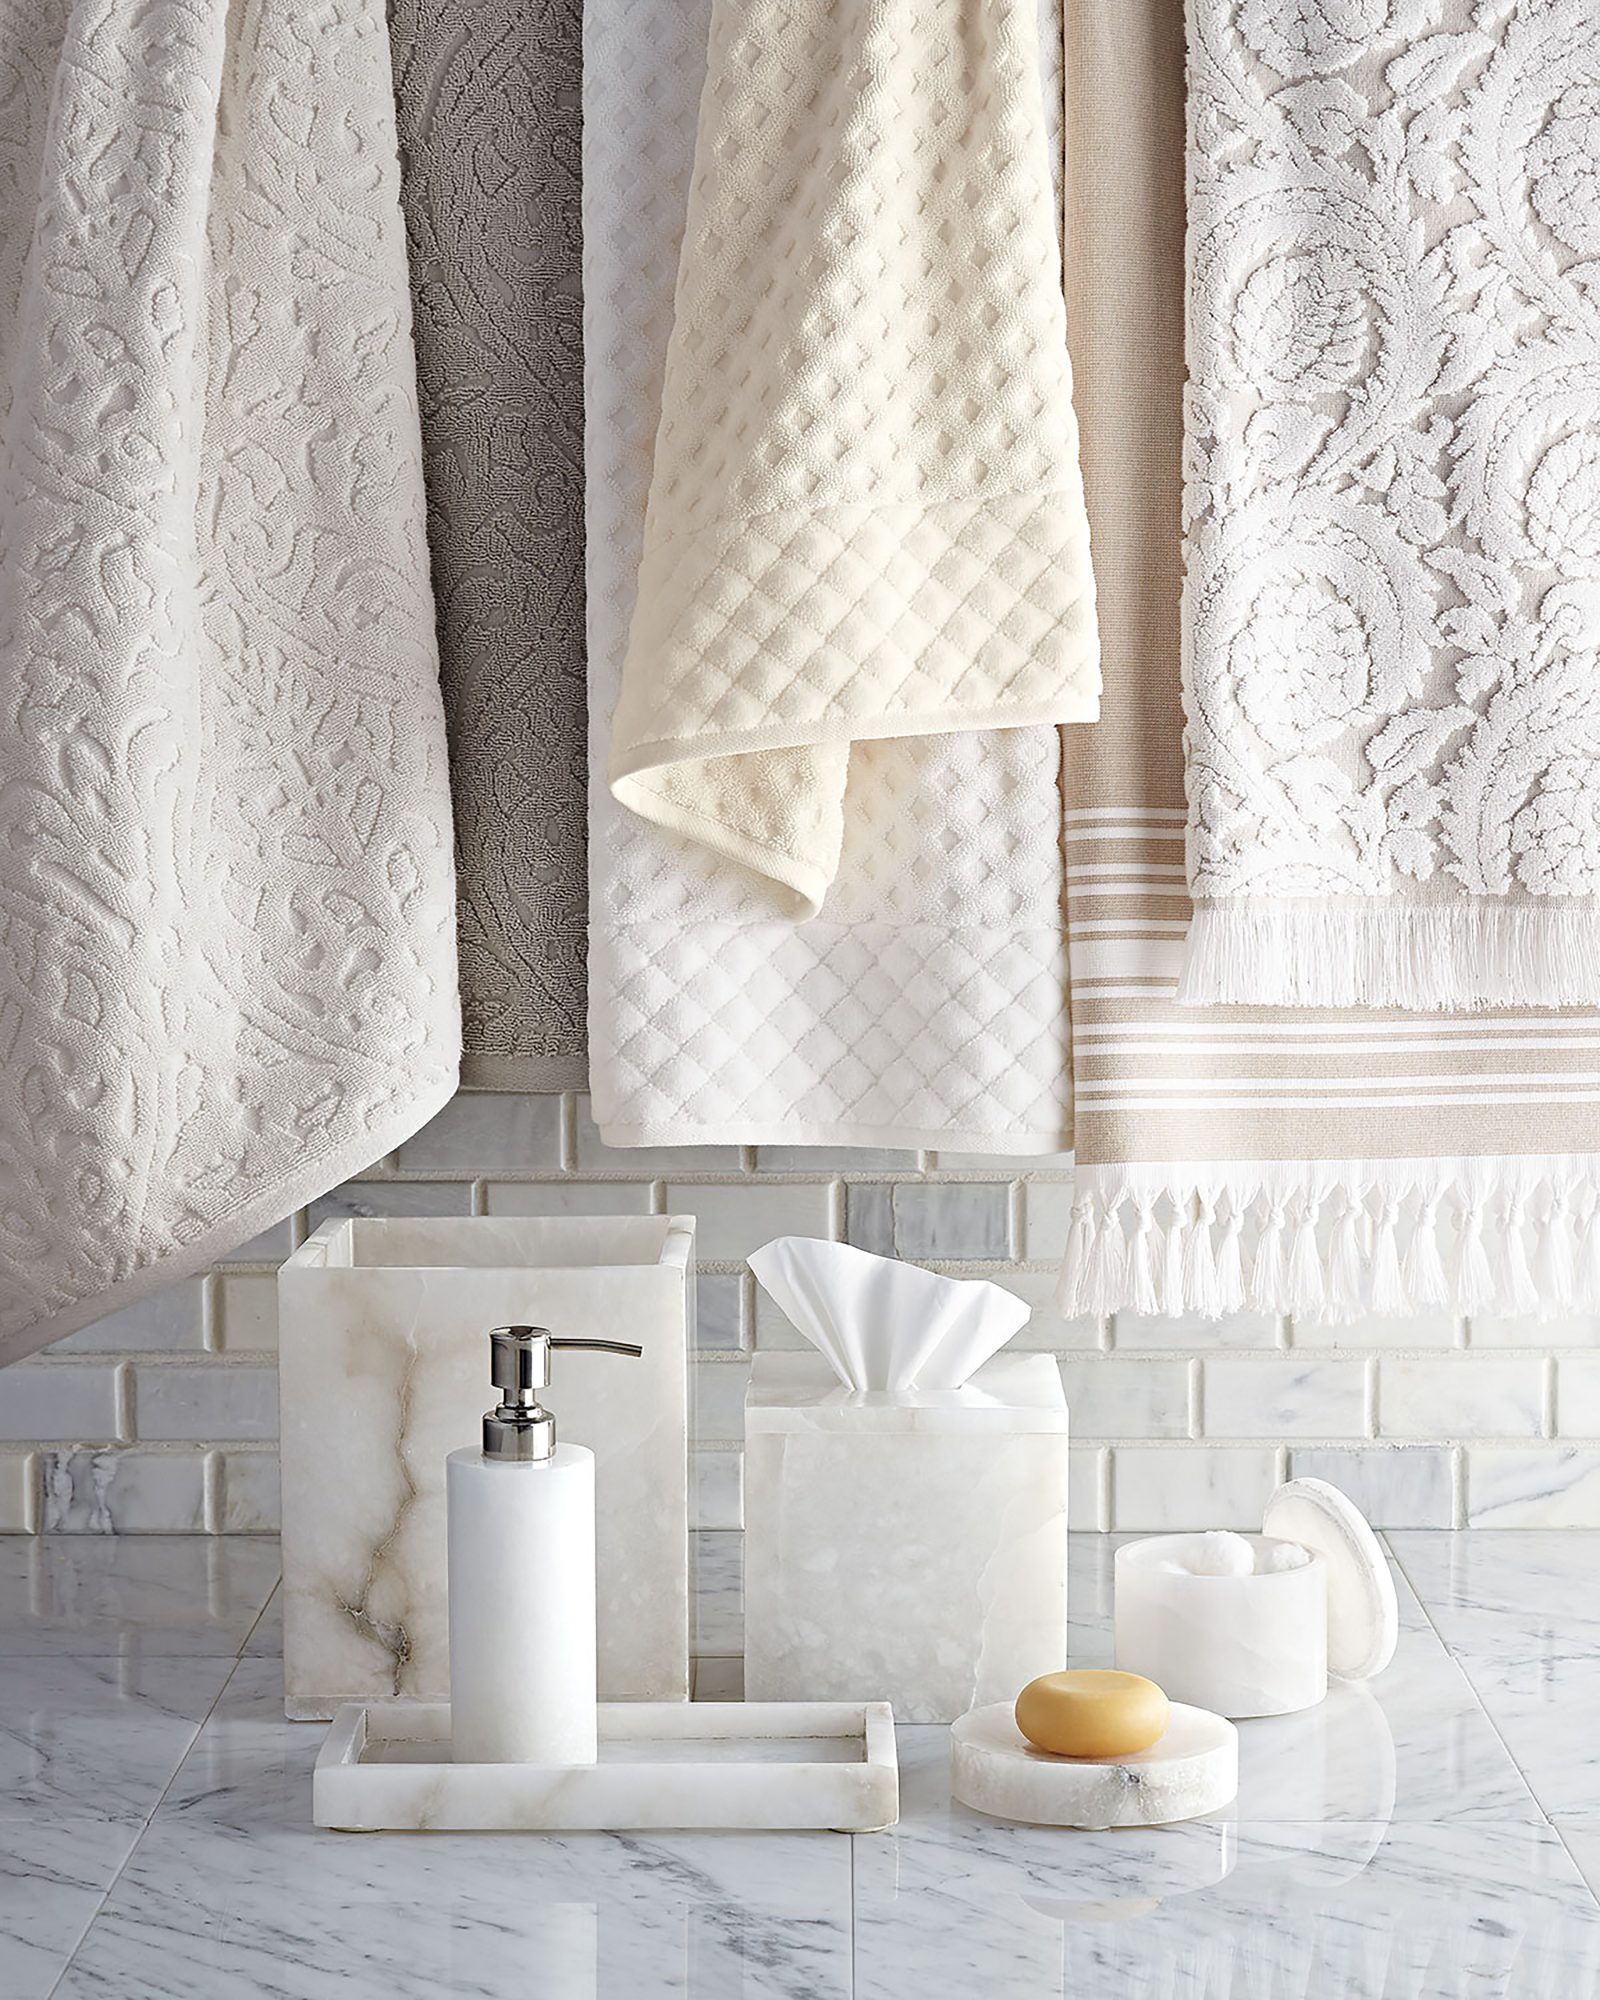 Whit marble bathroom accessories